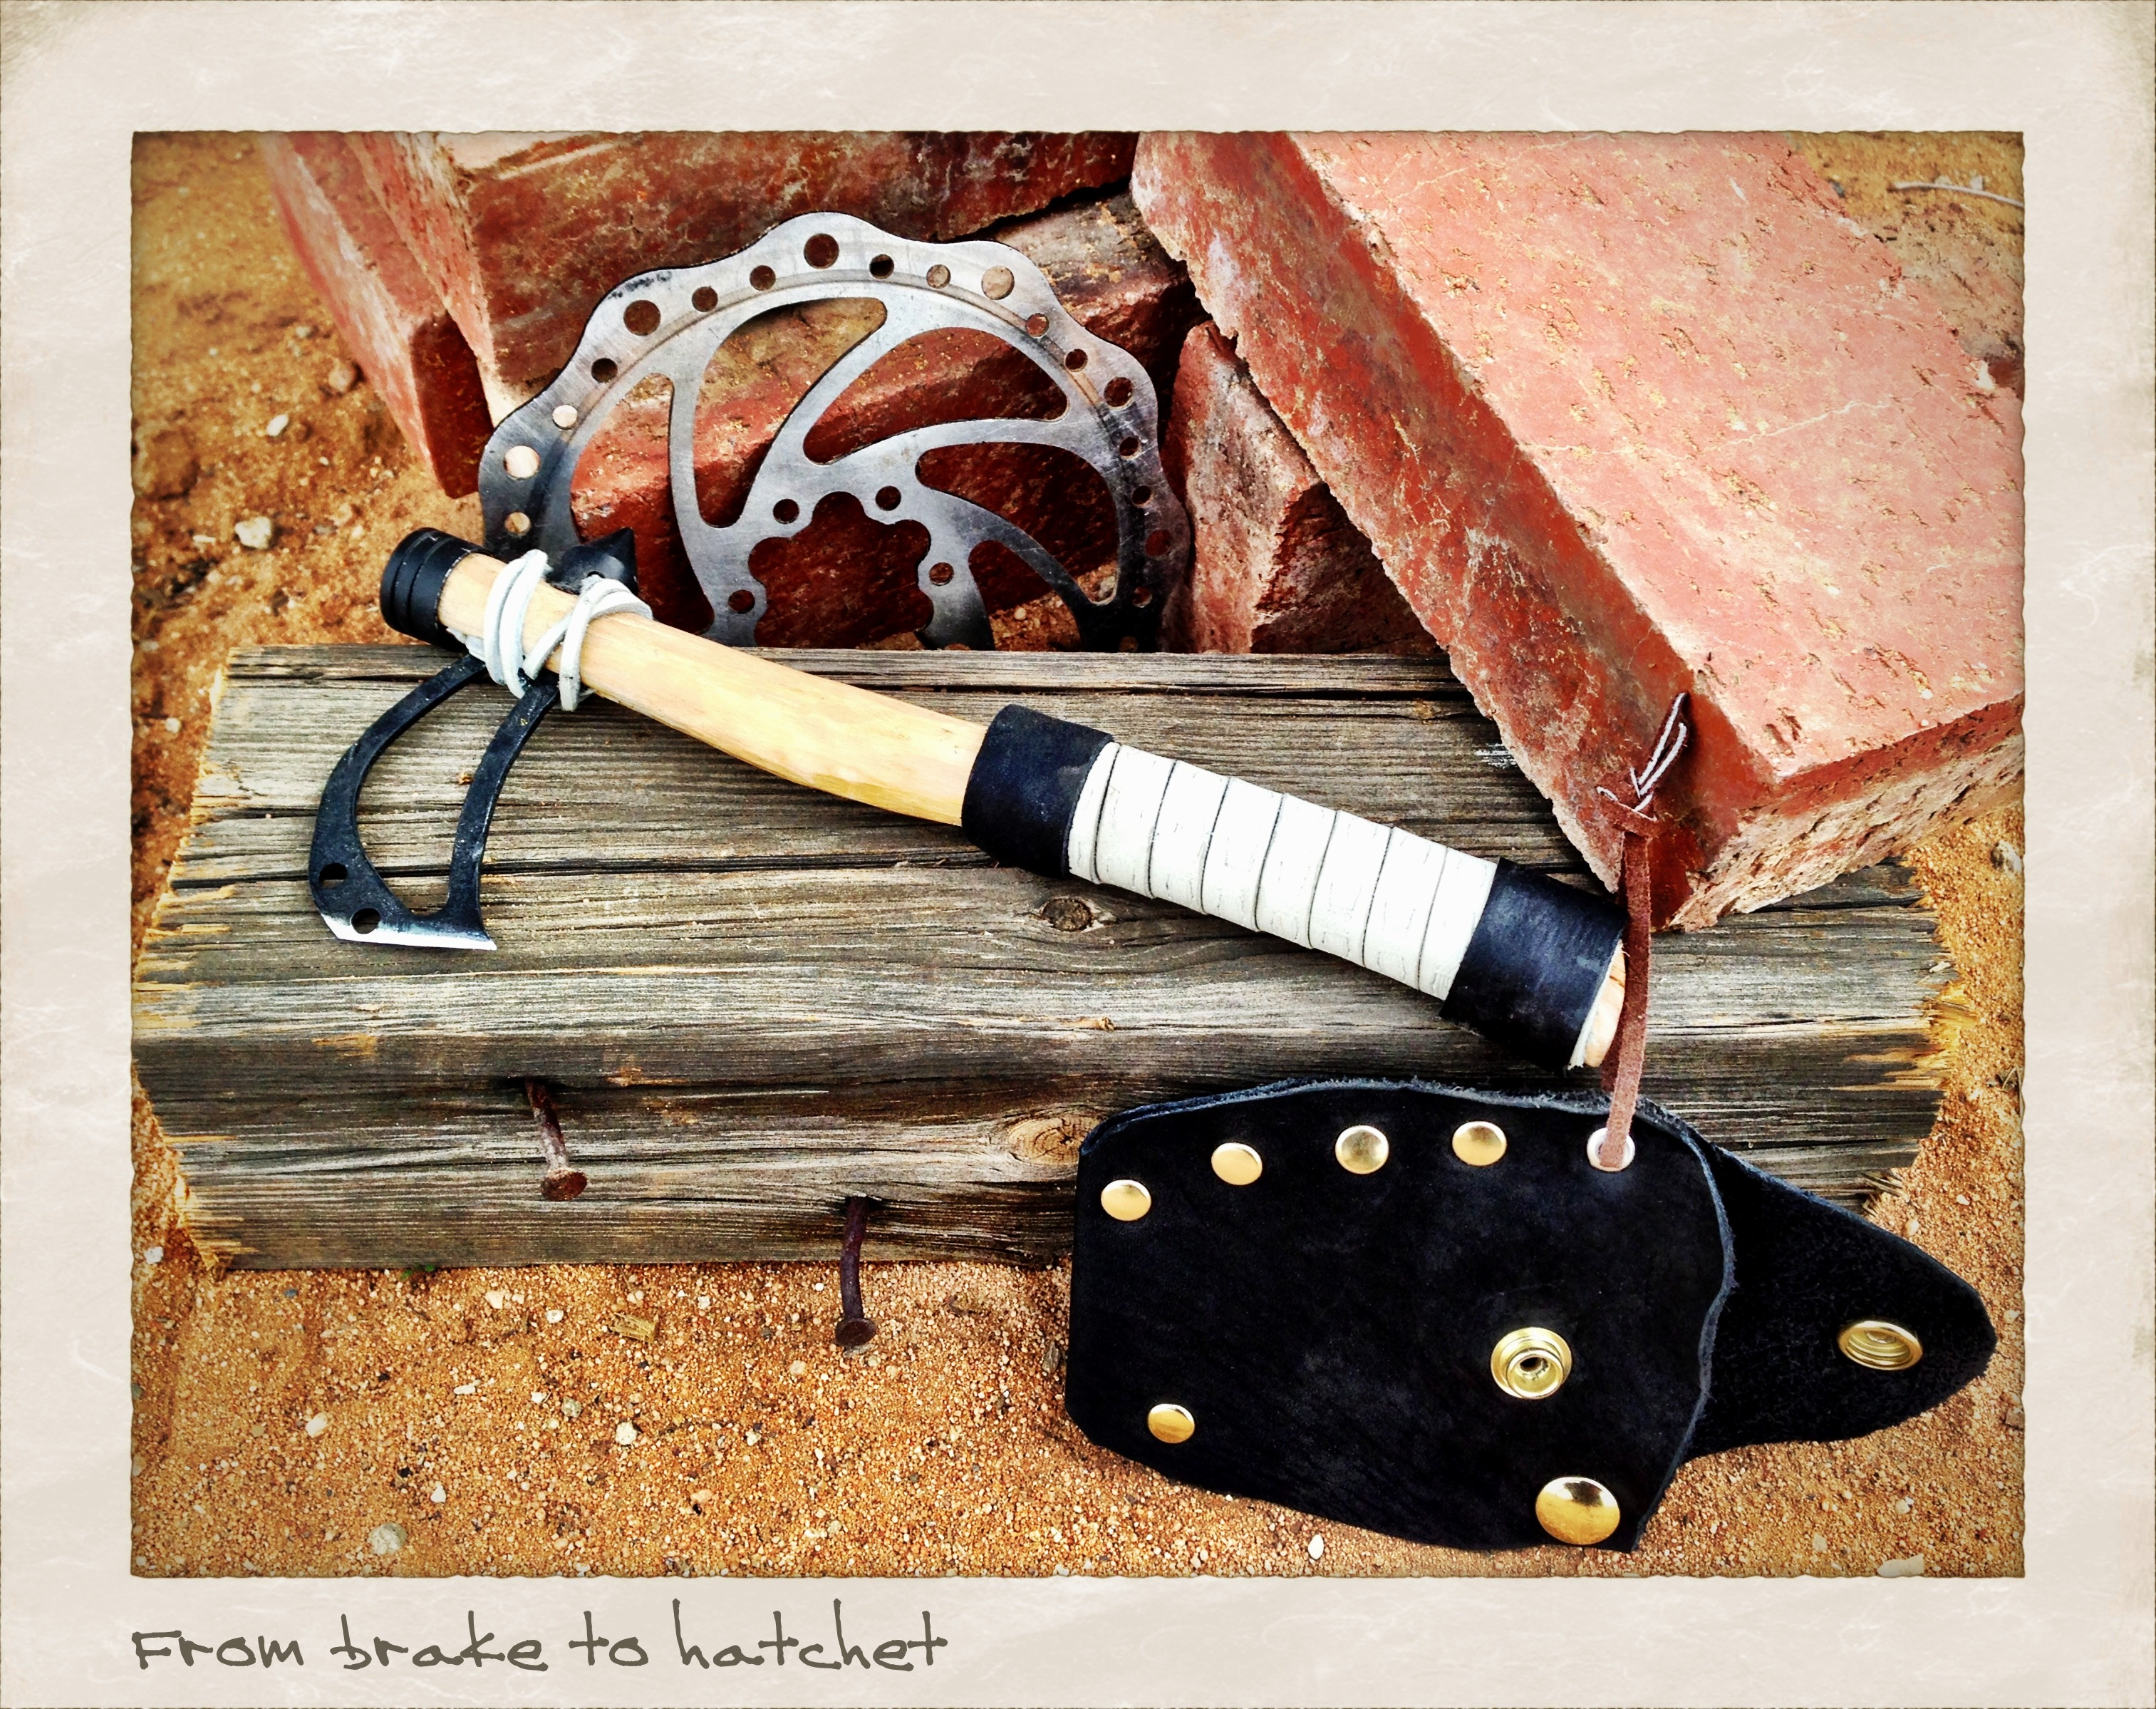 Build A Disc Brake Utility Hatchet